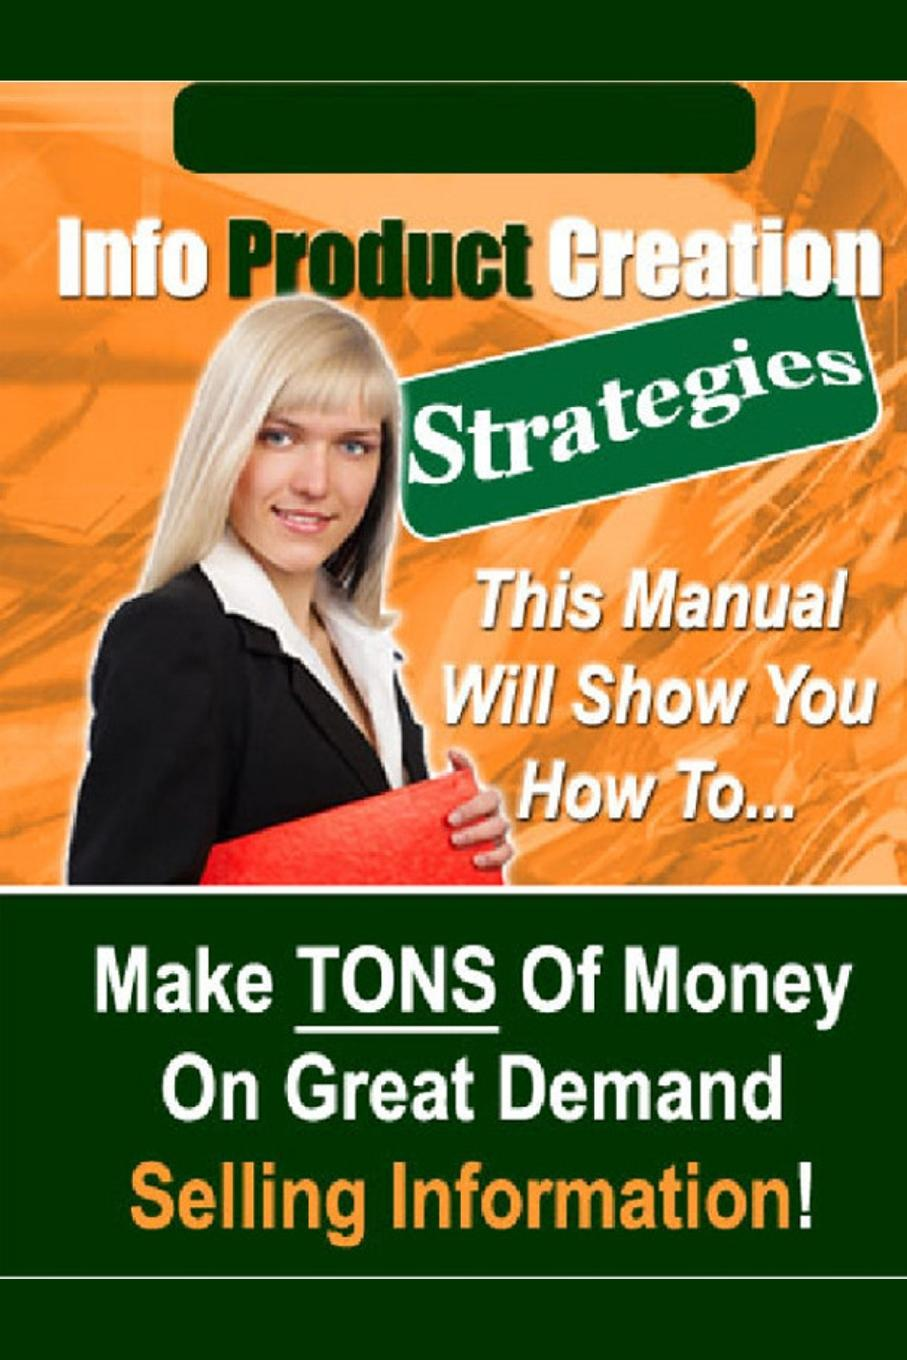 New Thrive Learning Institute Info Product Creation Strategies maria m bowe warfare the things they never tell you about part 1